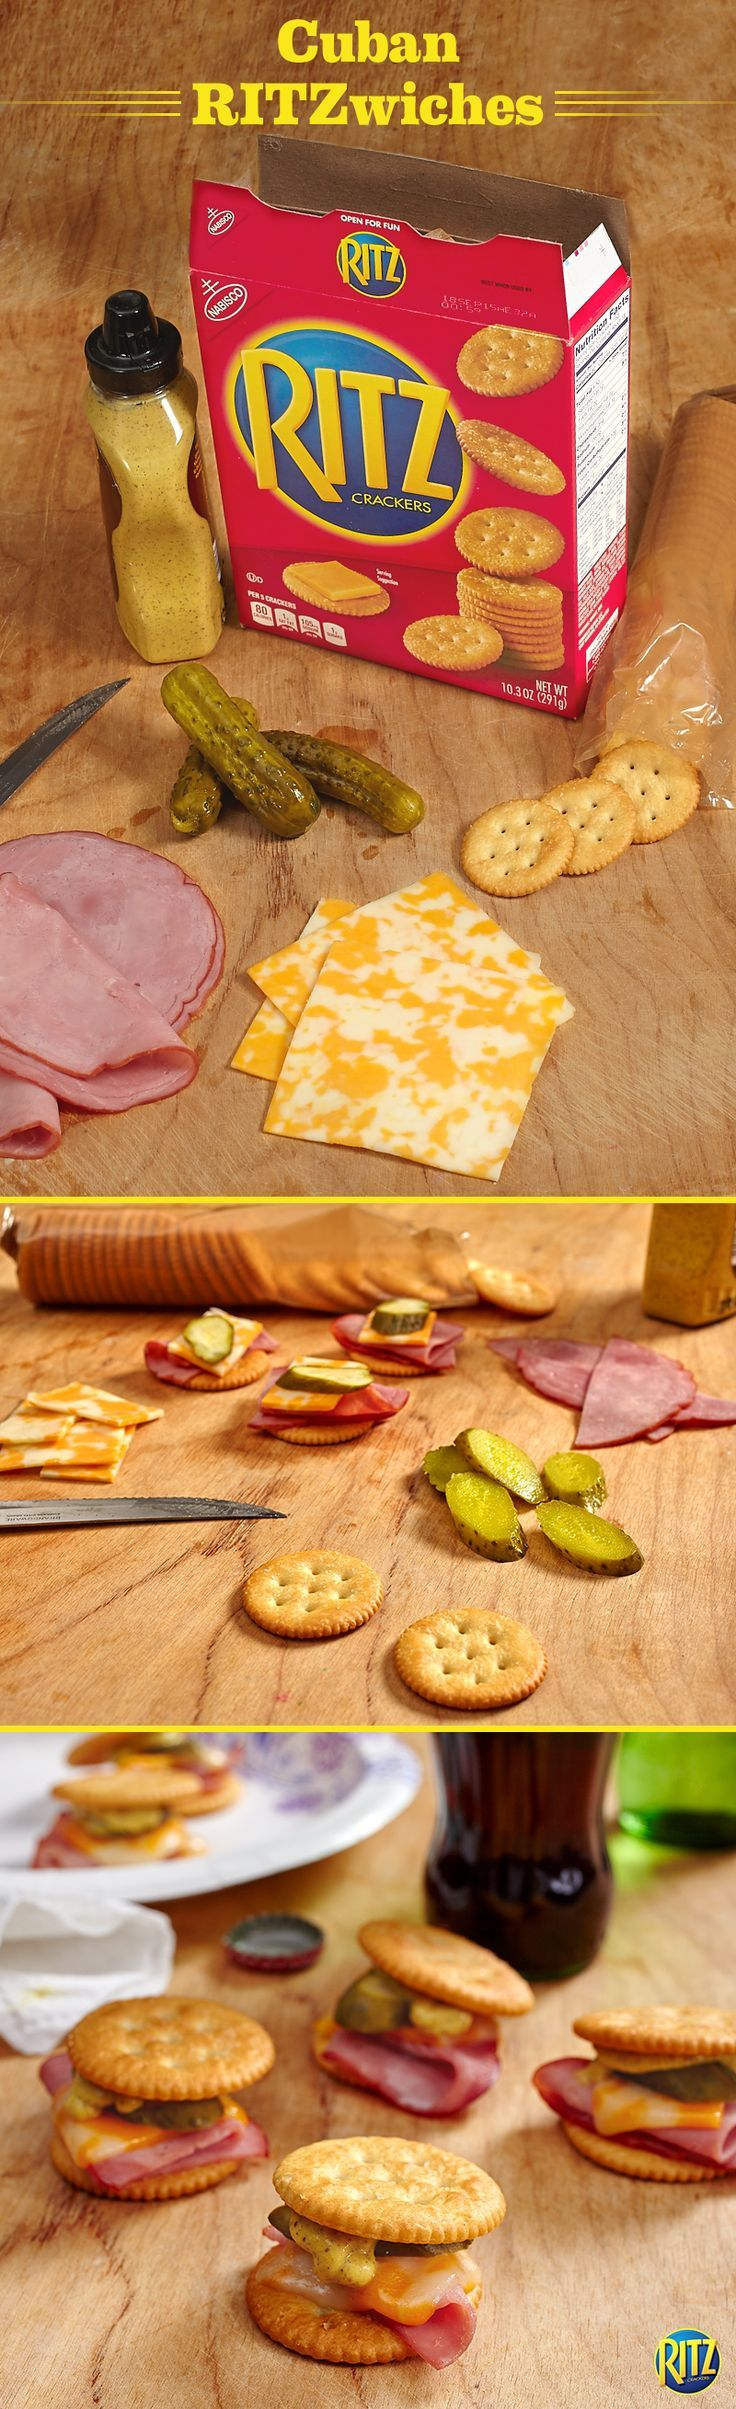 "RITZ ""Cuban"" Sandwich These RITZ cracker ""Cuban"" Sandwich Bites are our take on the authentic pressed sandwich. Top original RITZ crackers with brown sugar ham, Colby and Monterey Jack cheese, kosher dill pickles, and spicy brown mustard. Cover each with a second cracker and pop in the microwave for 10 seconds. Everyone's favorite sandwich, bite-sized! Life's Rich."